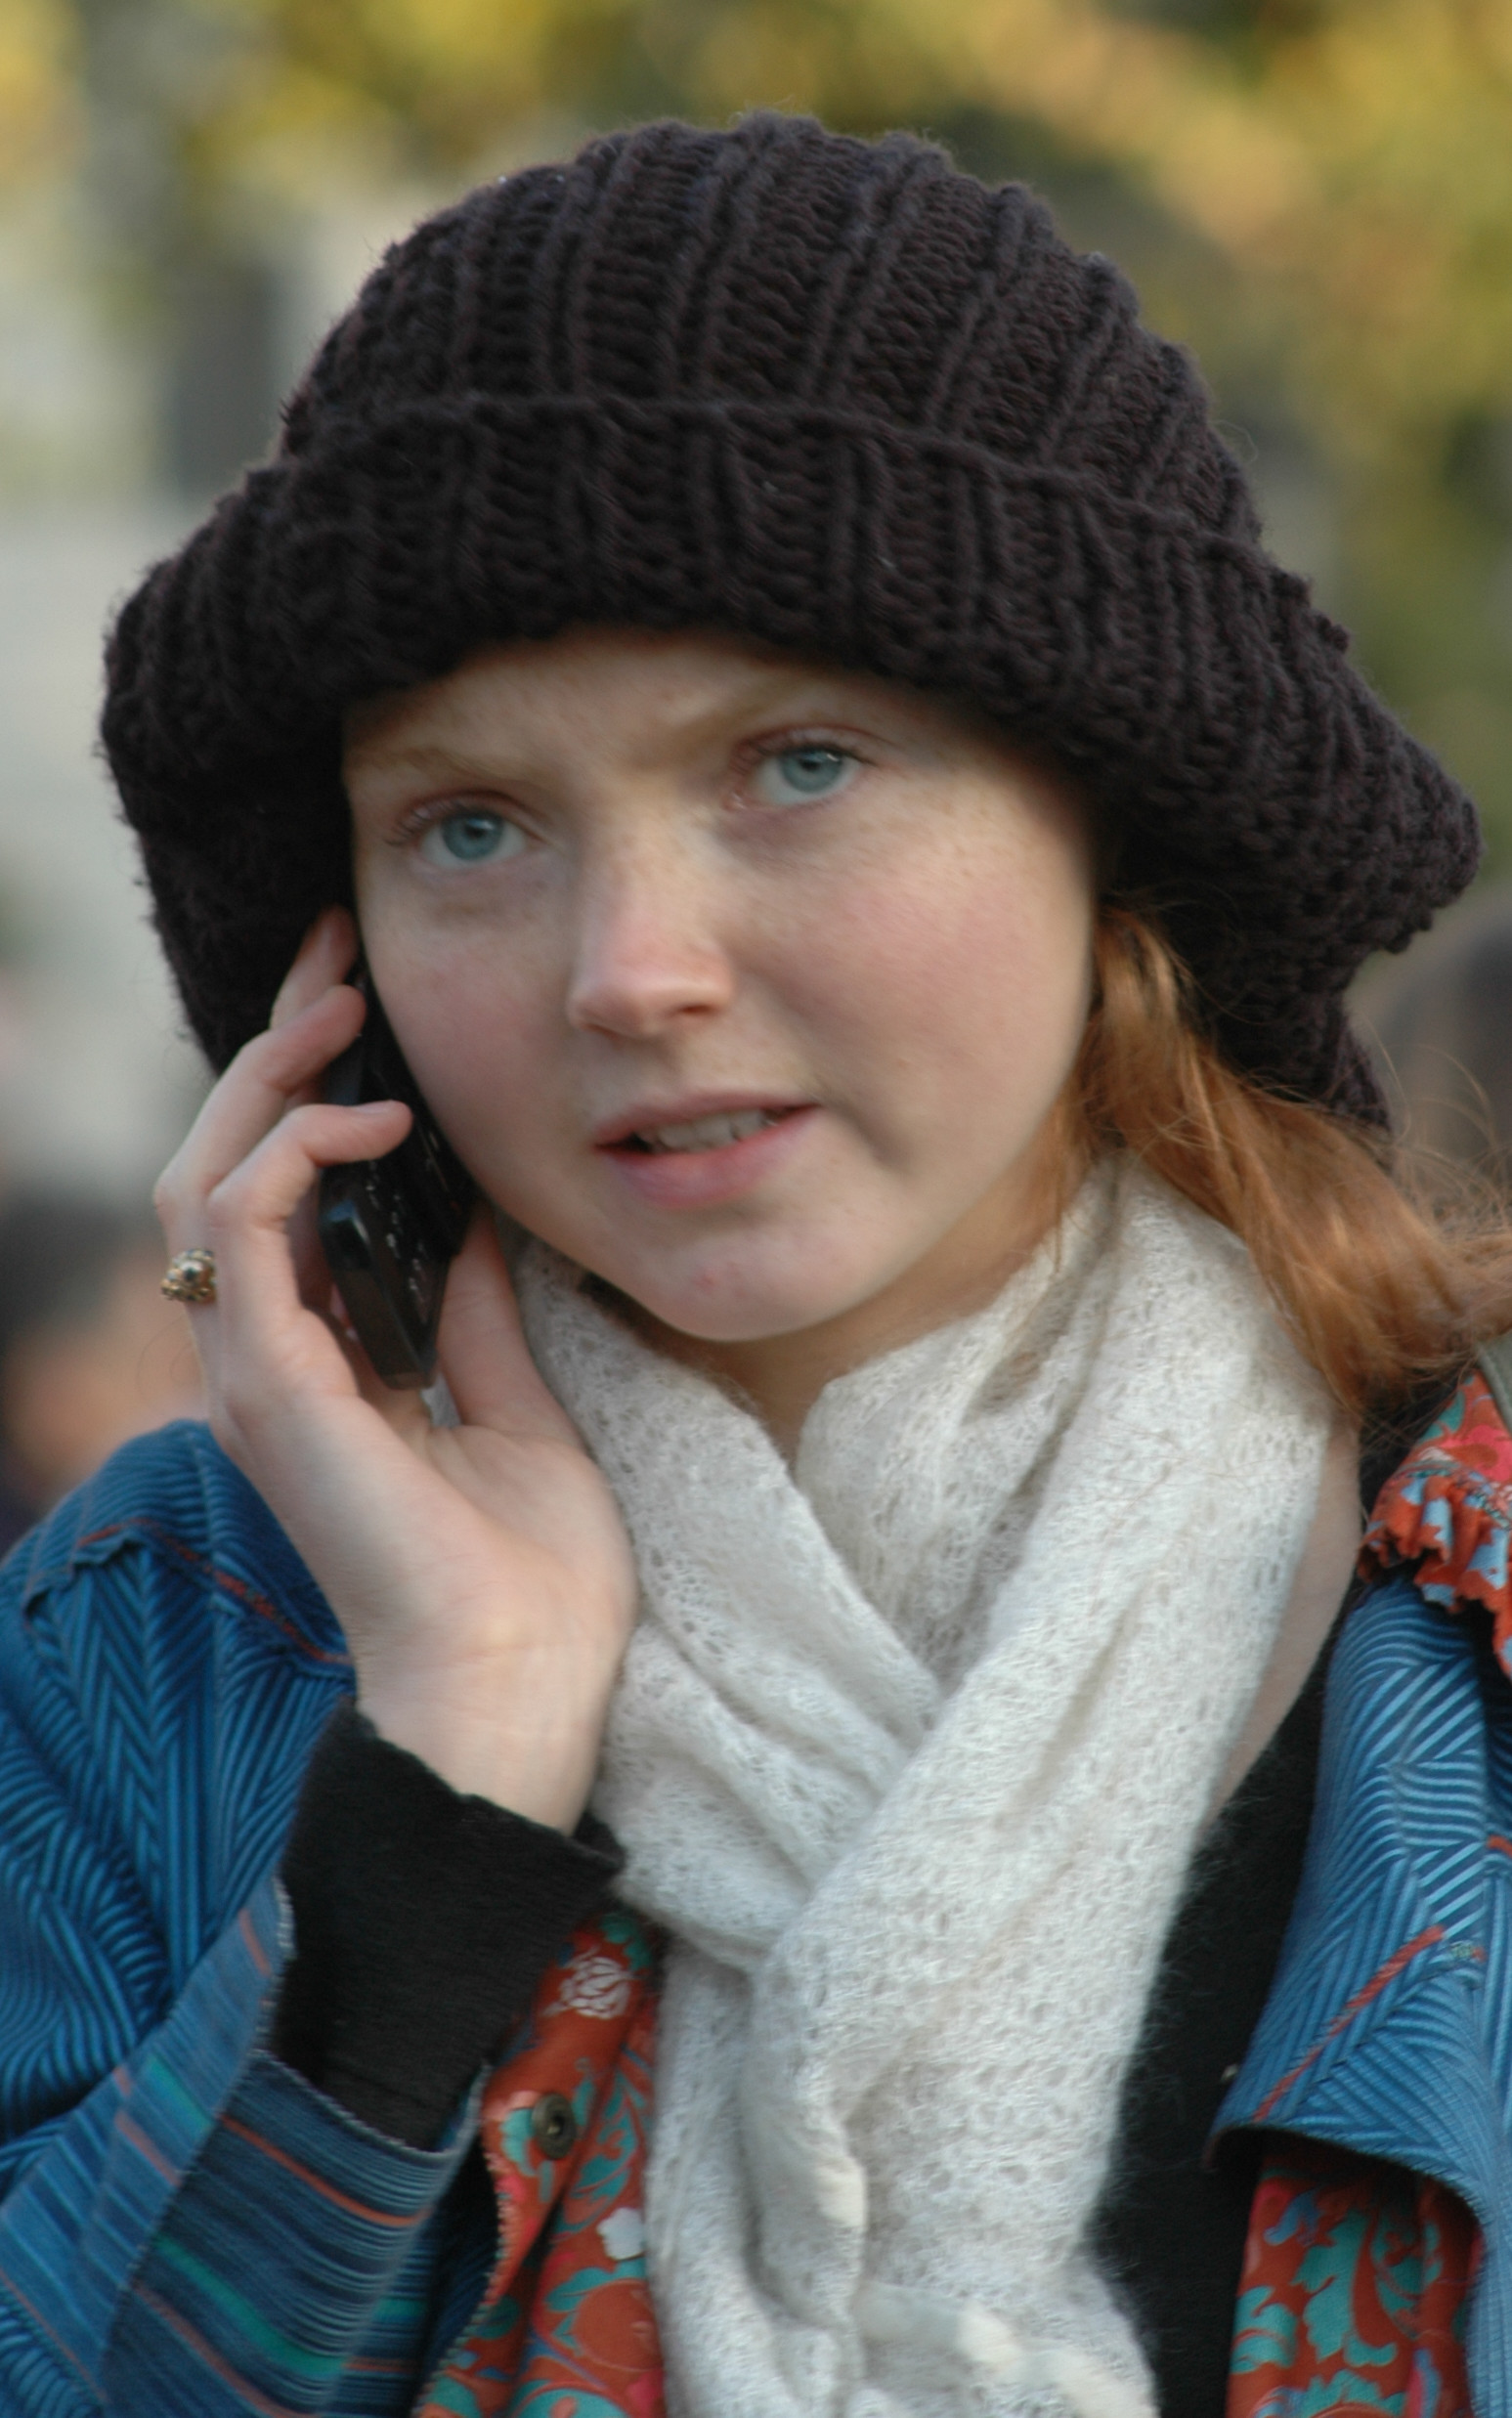 the head and shoulders of Cole outside on a mobile phone wearing a black beret, blue coat and white scarf